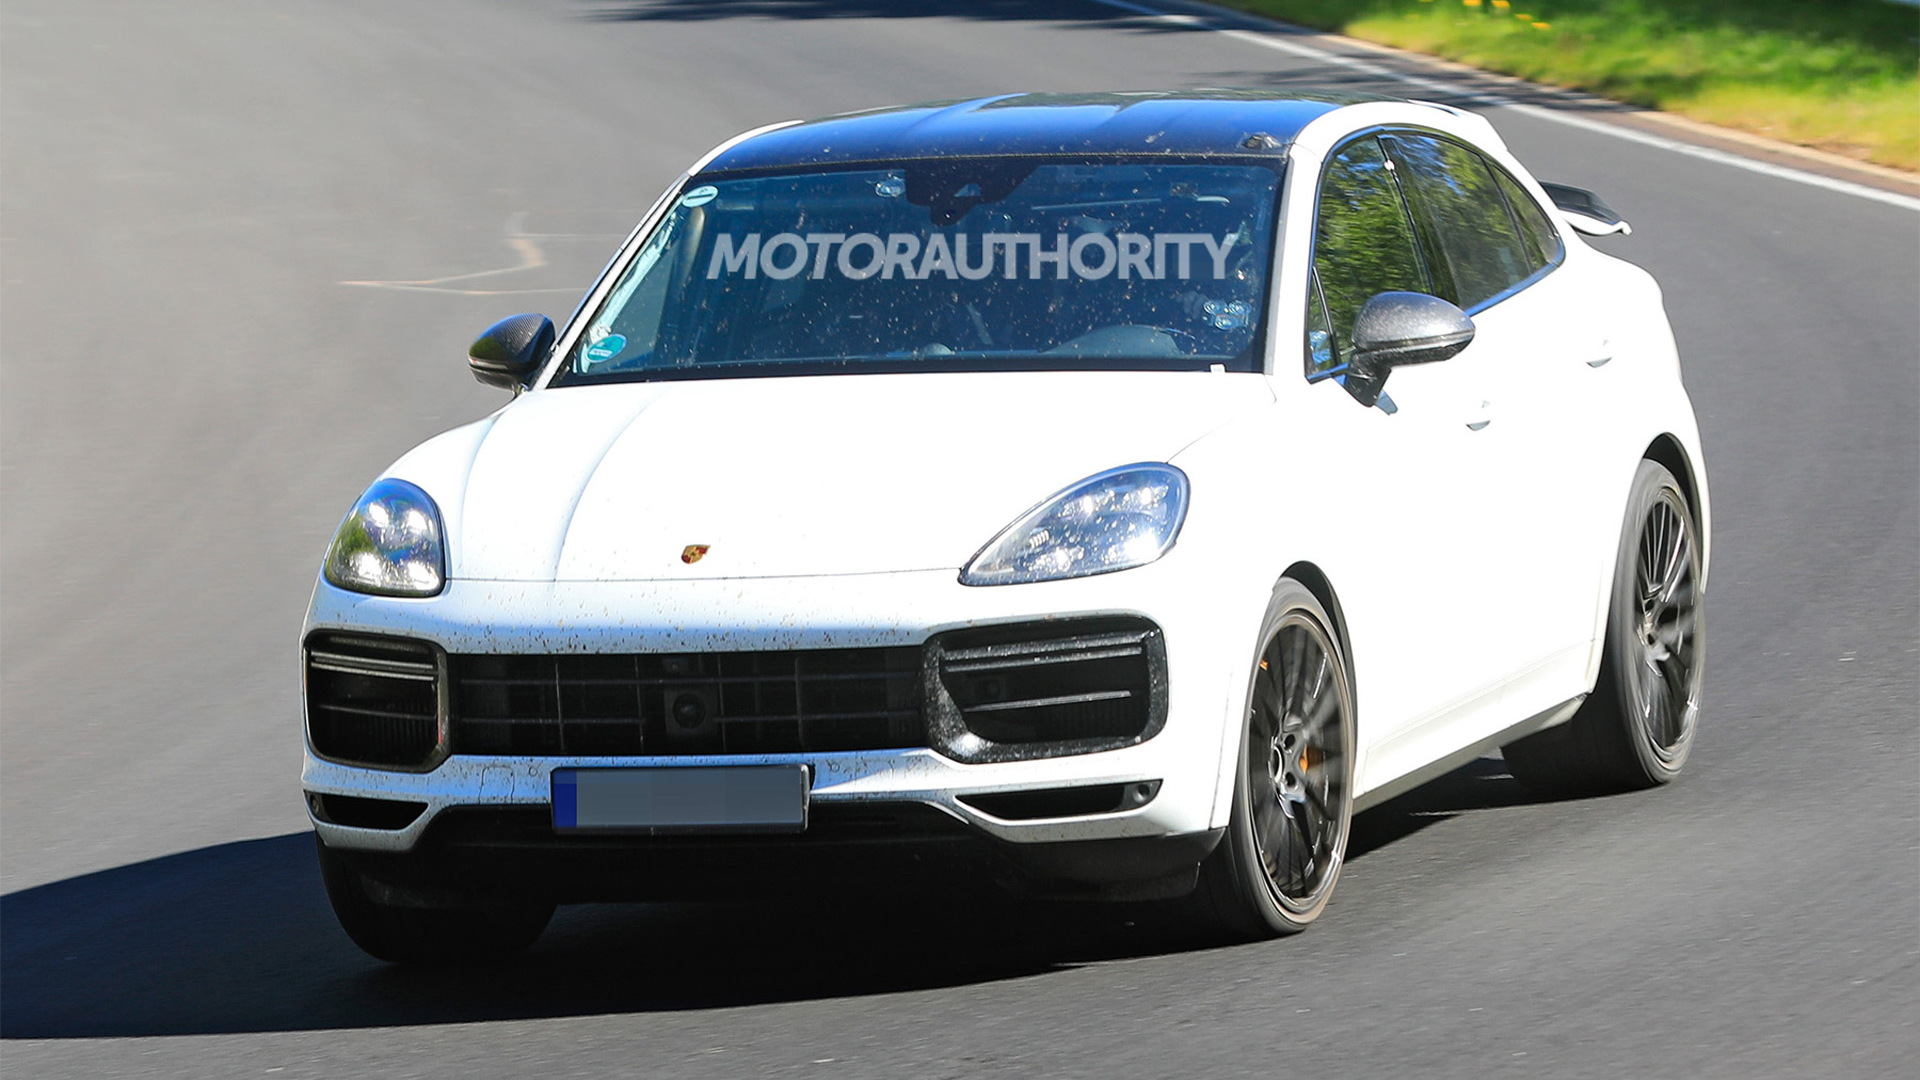 2022 Porsche Cayenne GTS Coupe spy shots - Photo credit: S. Baldauf/SB-Medien